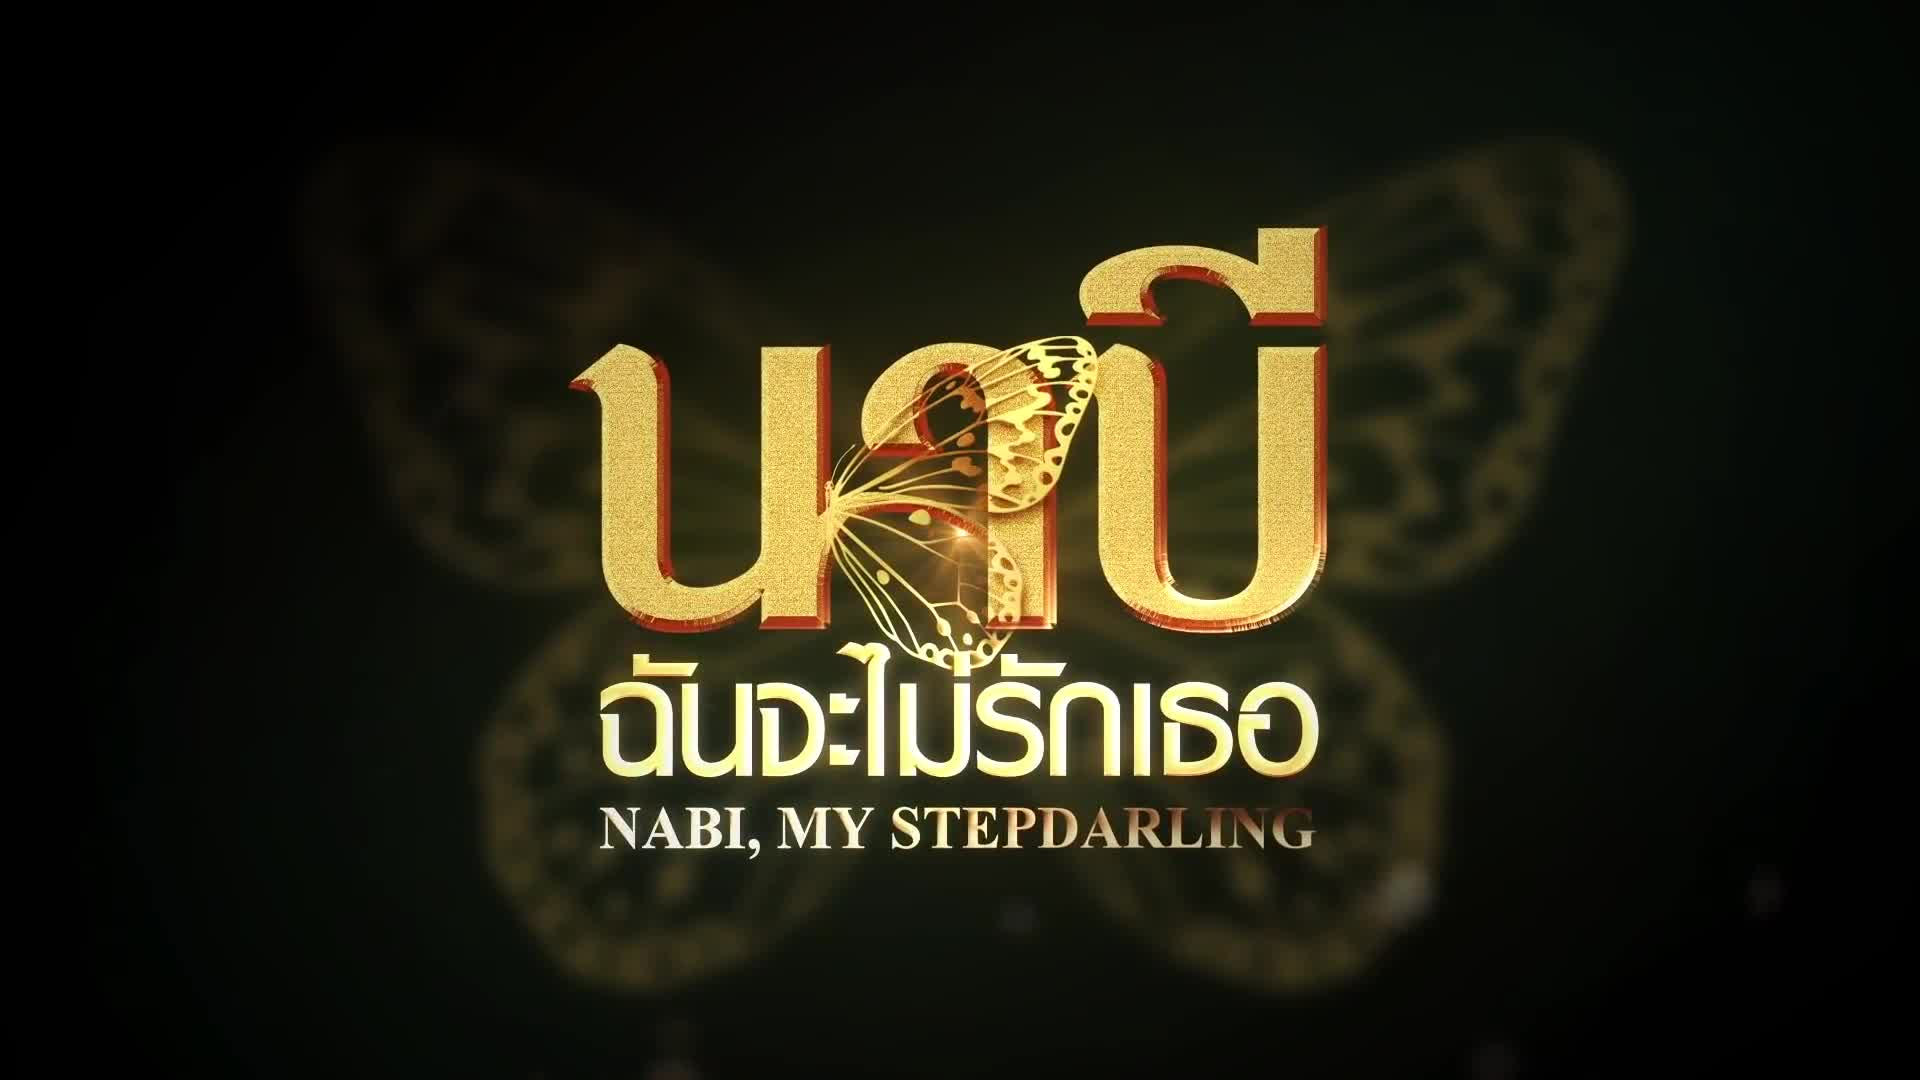 Nabi, My Stepdarling (2021)